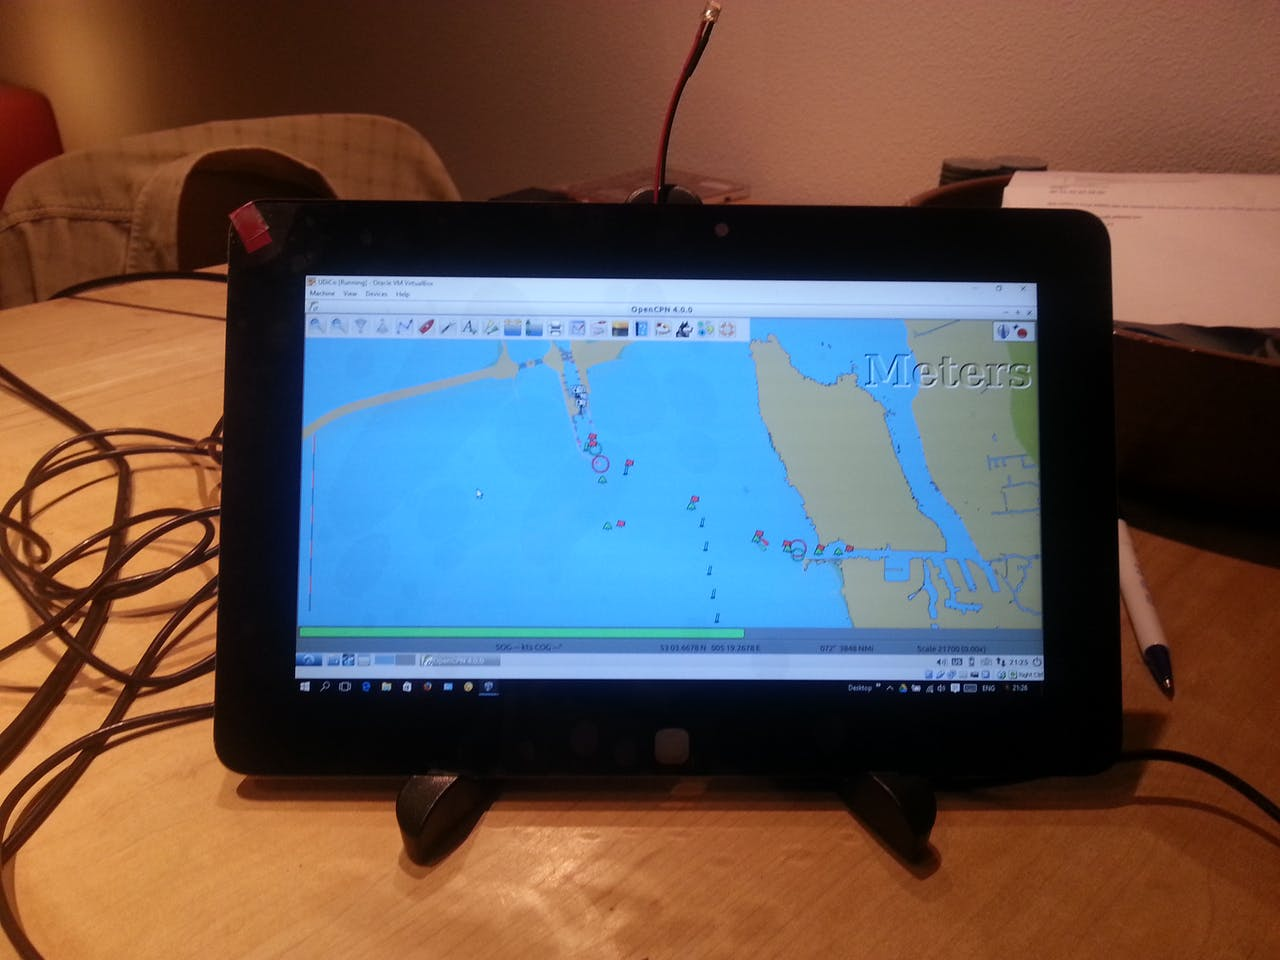 A powerful Maritime Instrument & Display Controller - Hackster io